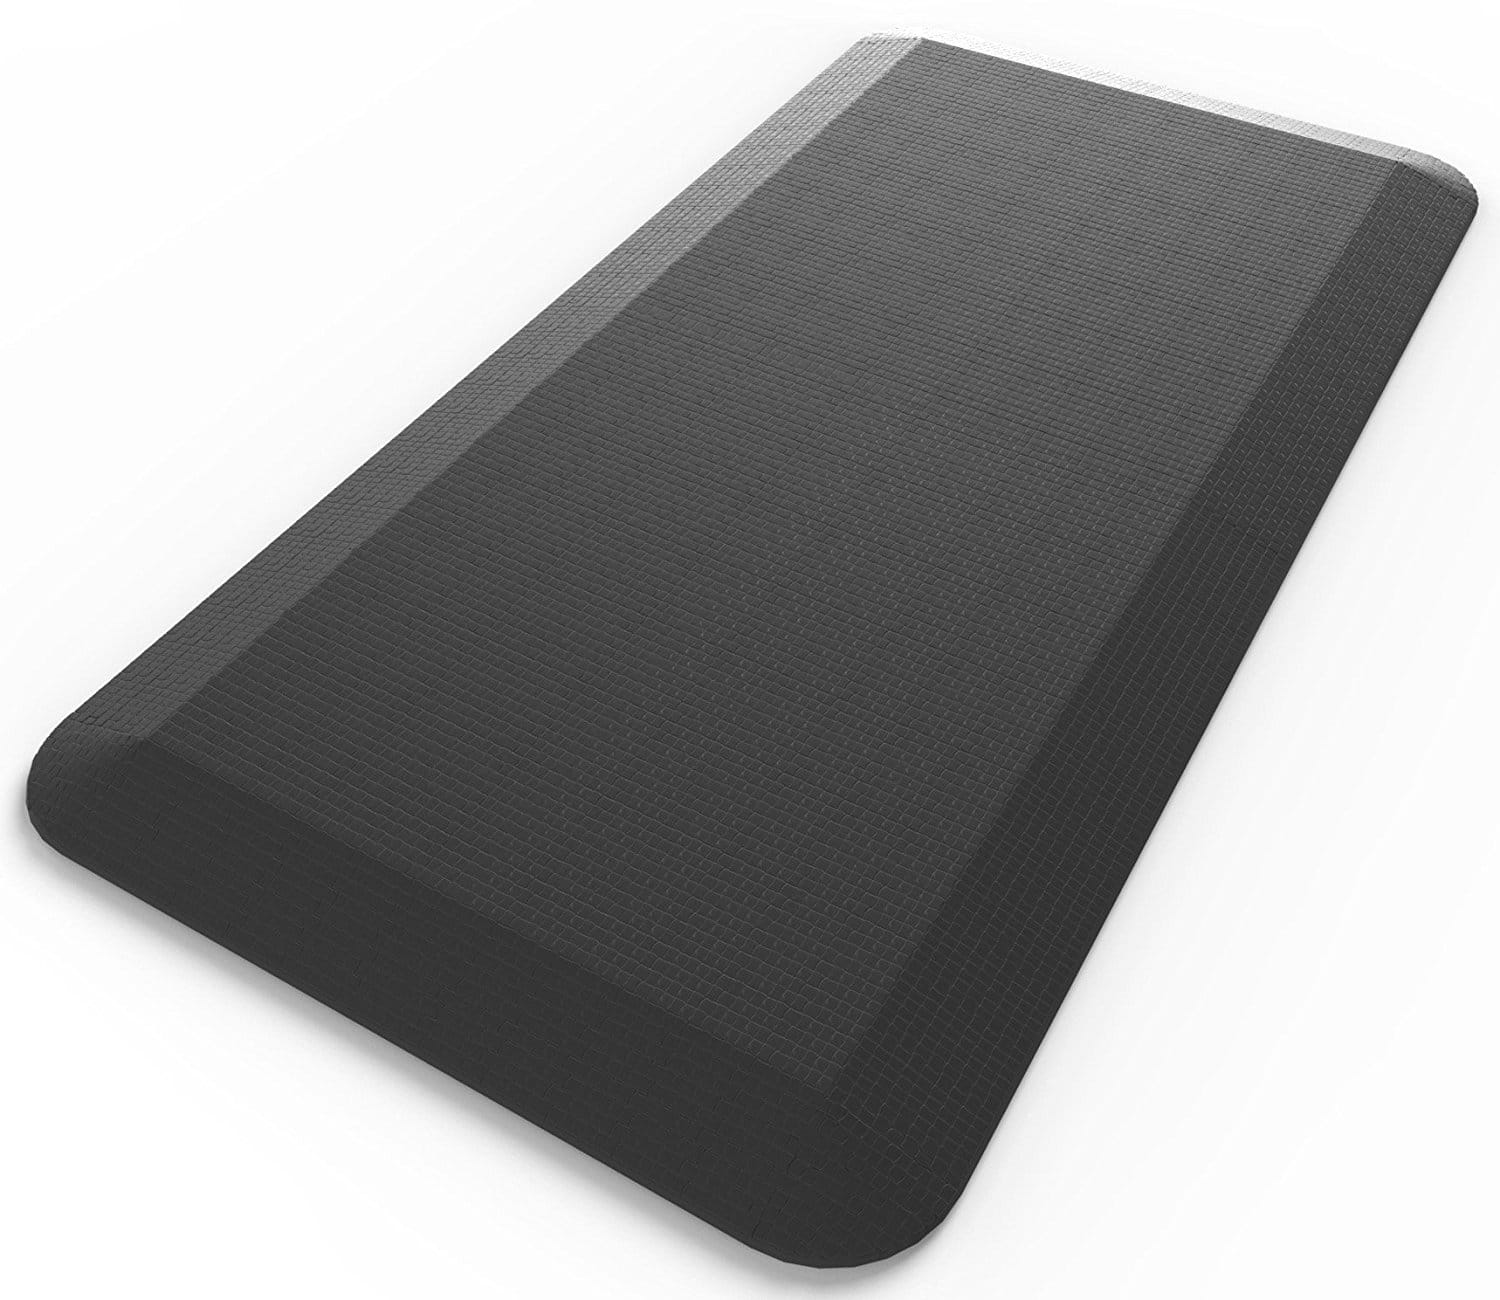 Royal Anti-Fatigue Comfort Mat - 20 in x 39 in x 3/4 in - Ergonomic Multi Surface, Non-Slip - Waterproof for $18.49 + Free Shipping